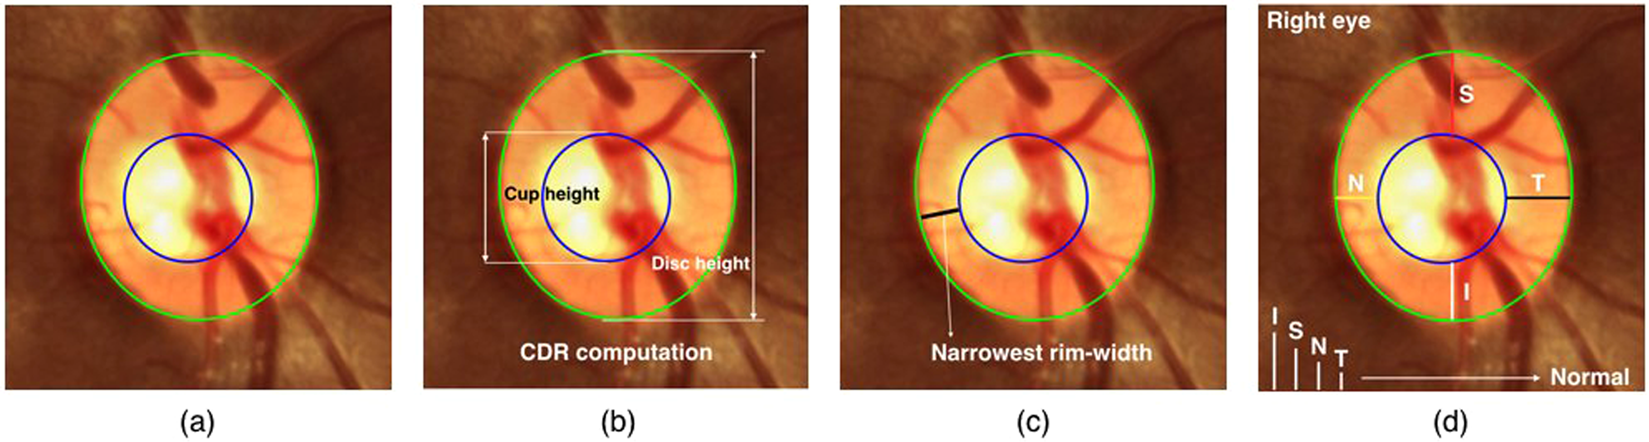 Rim-to-Disc Ratio Outperforms Cup-to-Disc Ratio for Glaucoma